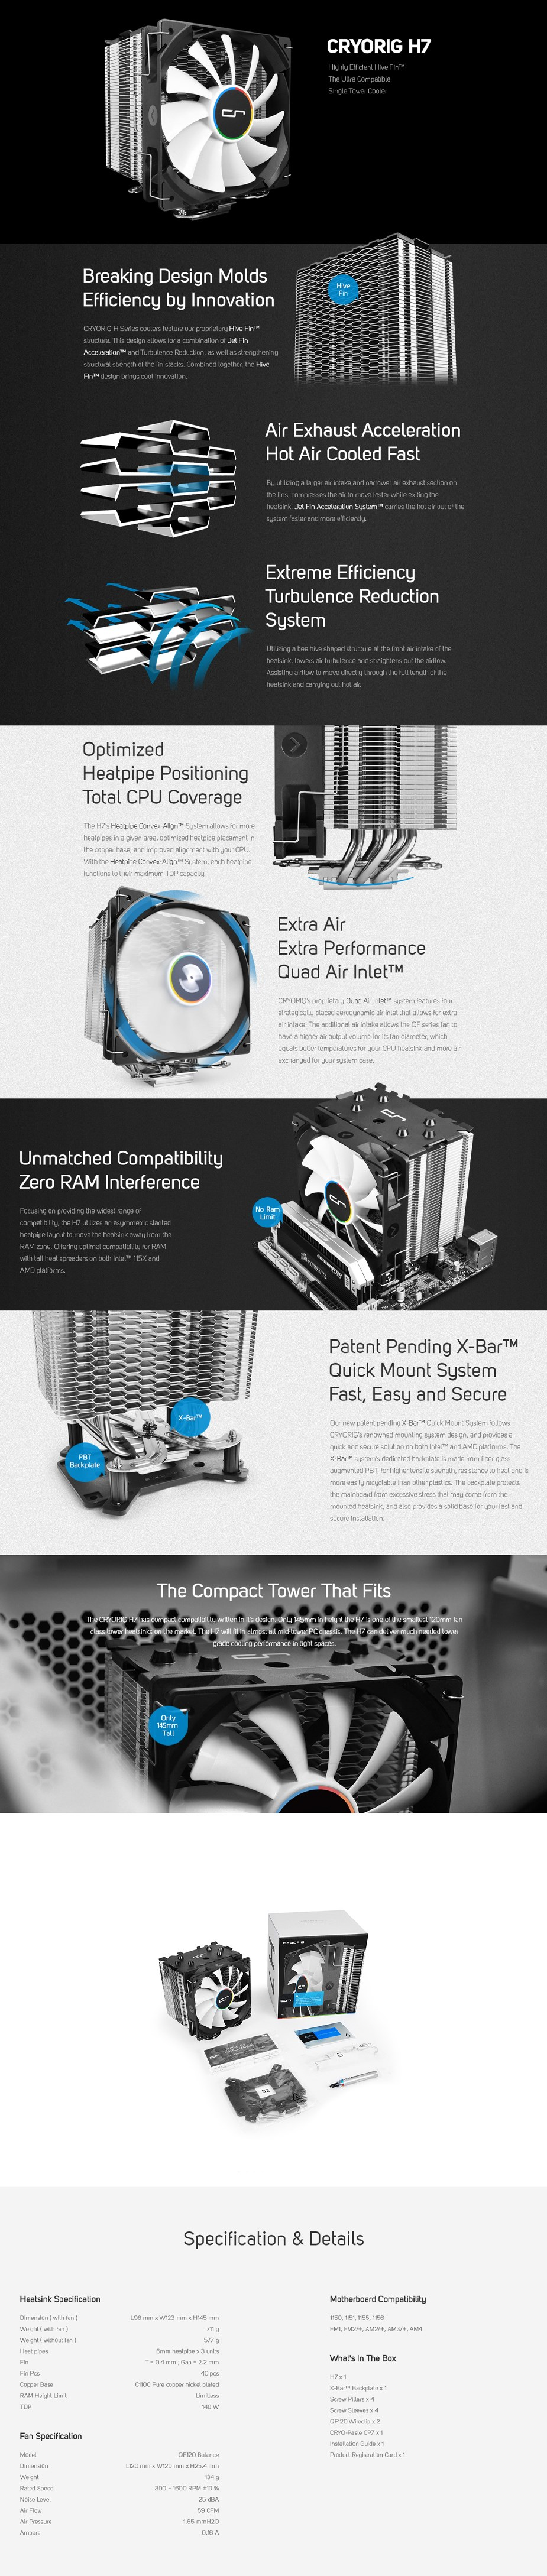 Cryorig H7 CPU Cooler - Overview 1